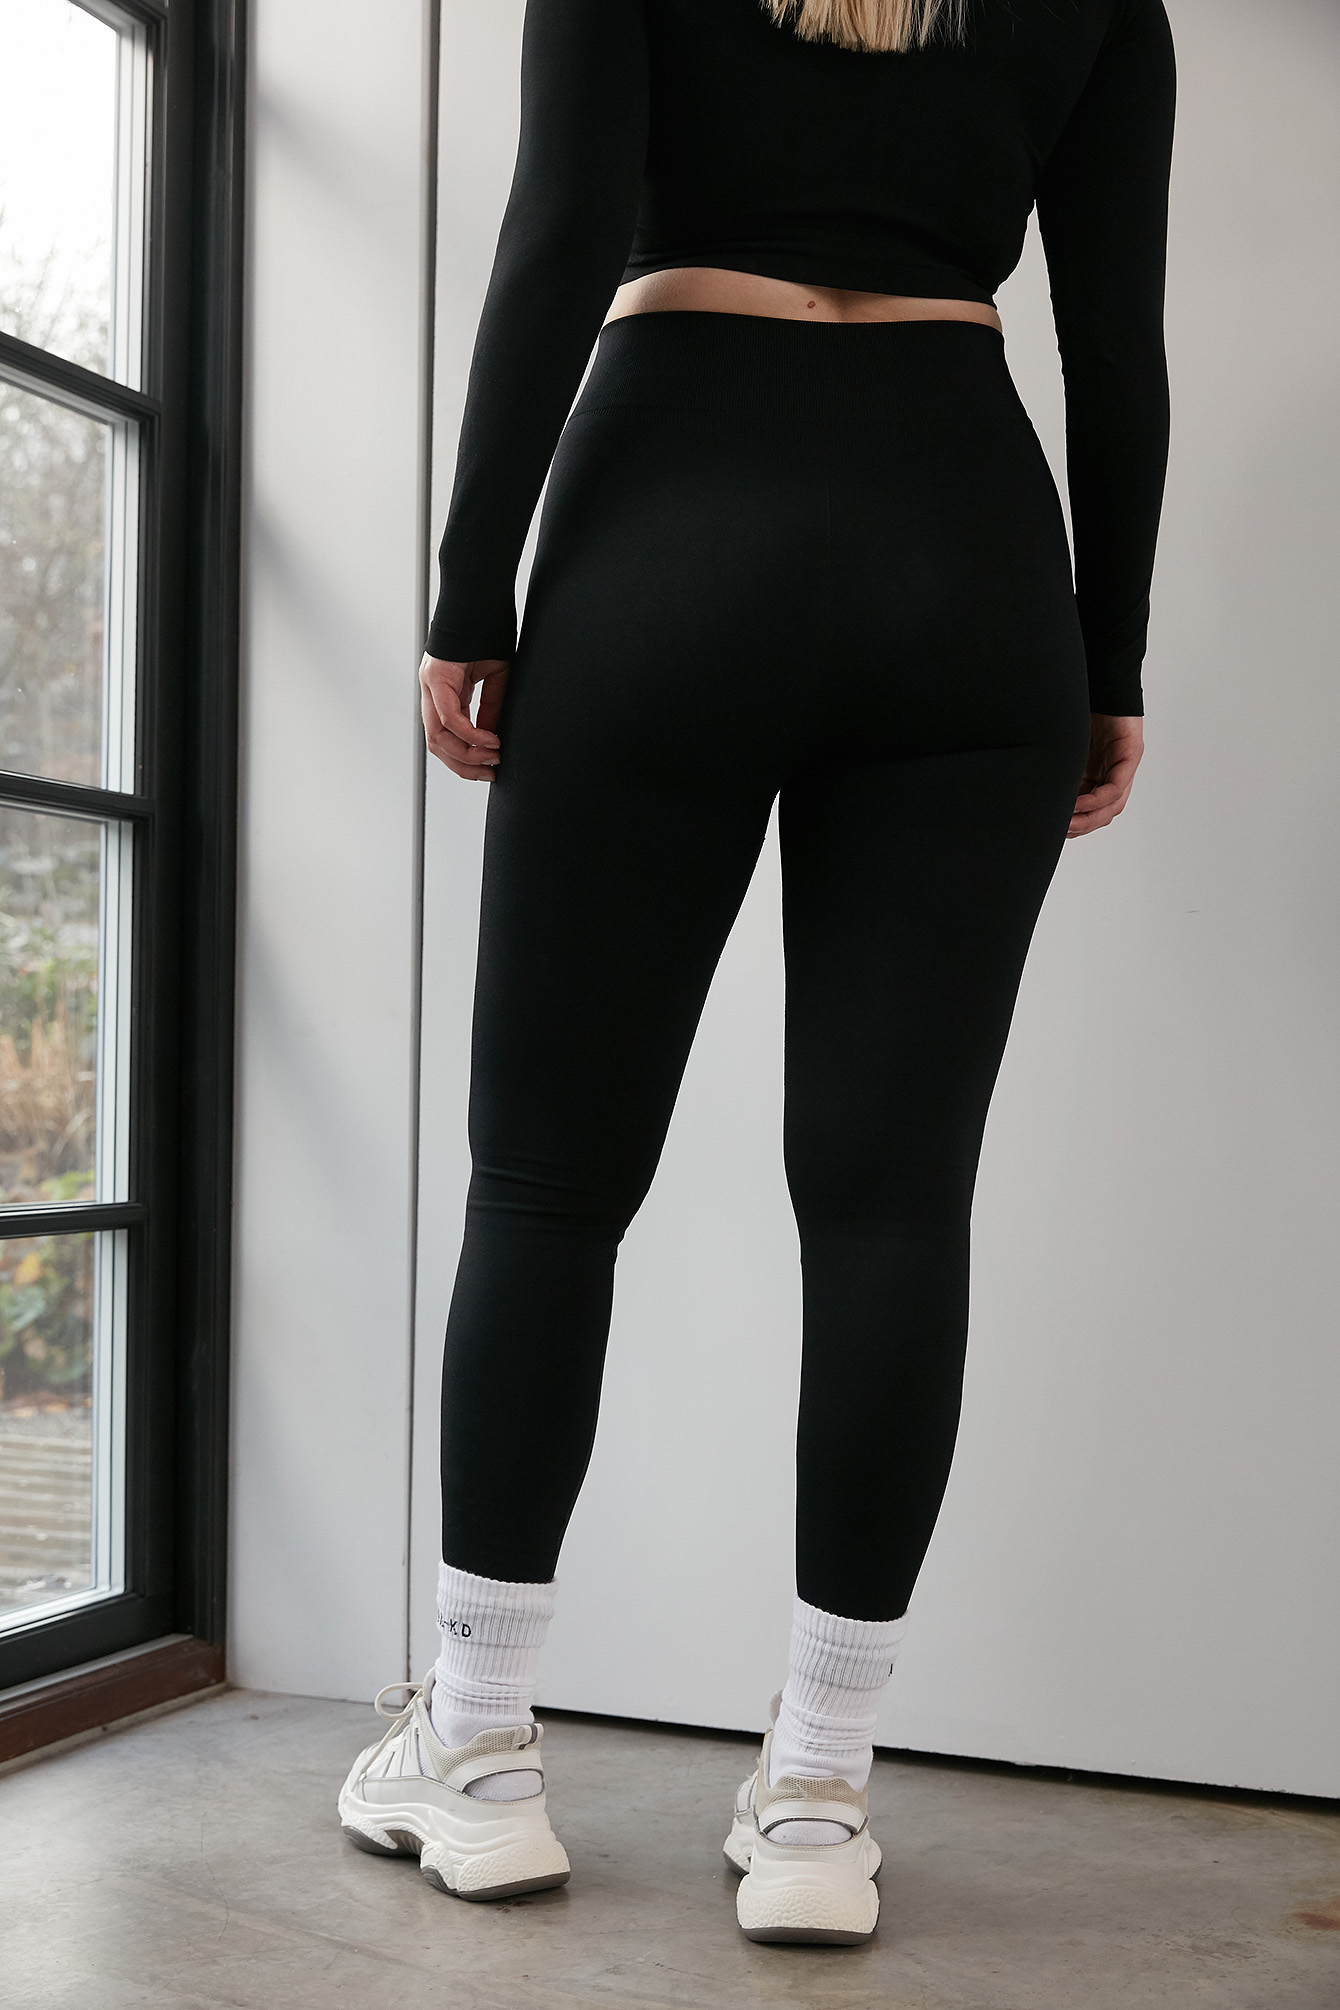 Black Seamless High Waist Leggings